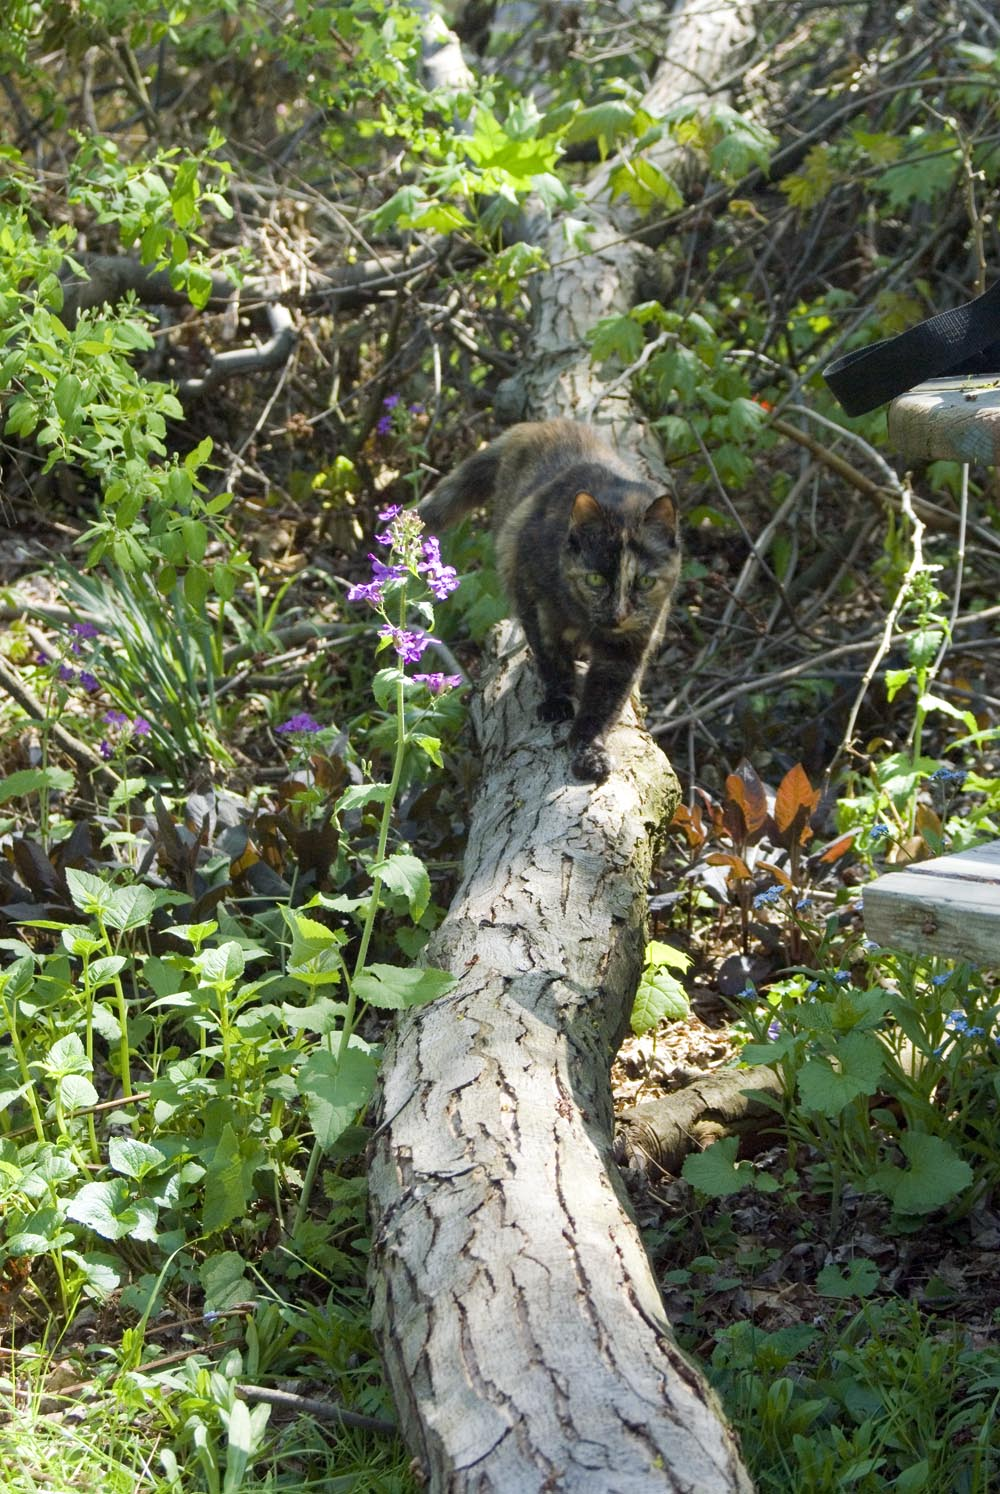 tortoiseshell cat on fallen branch